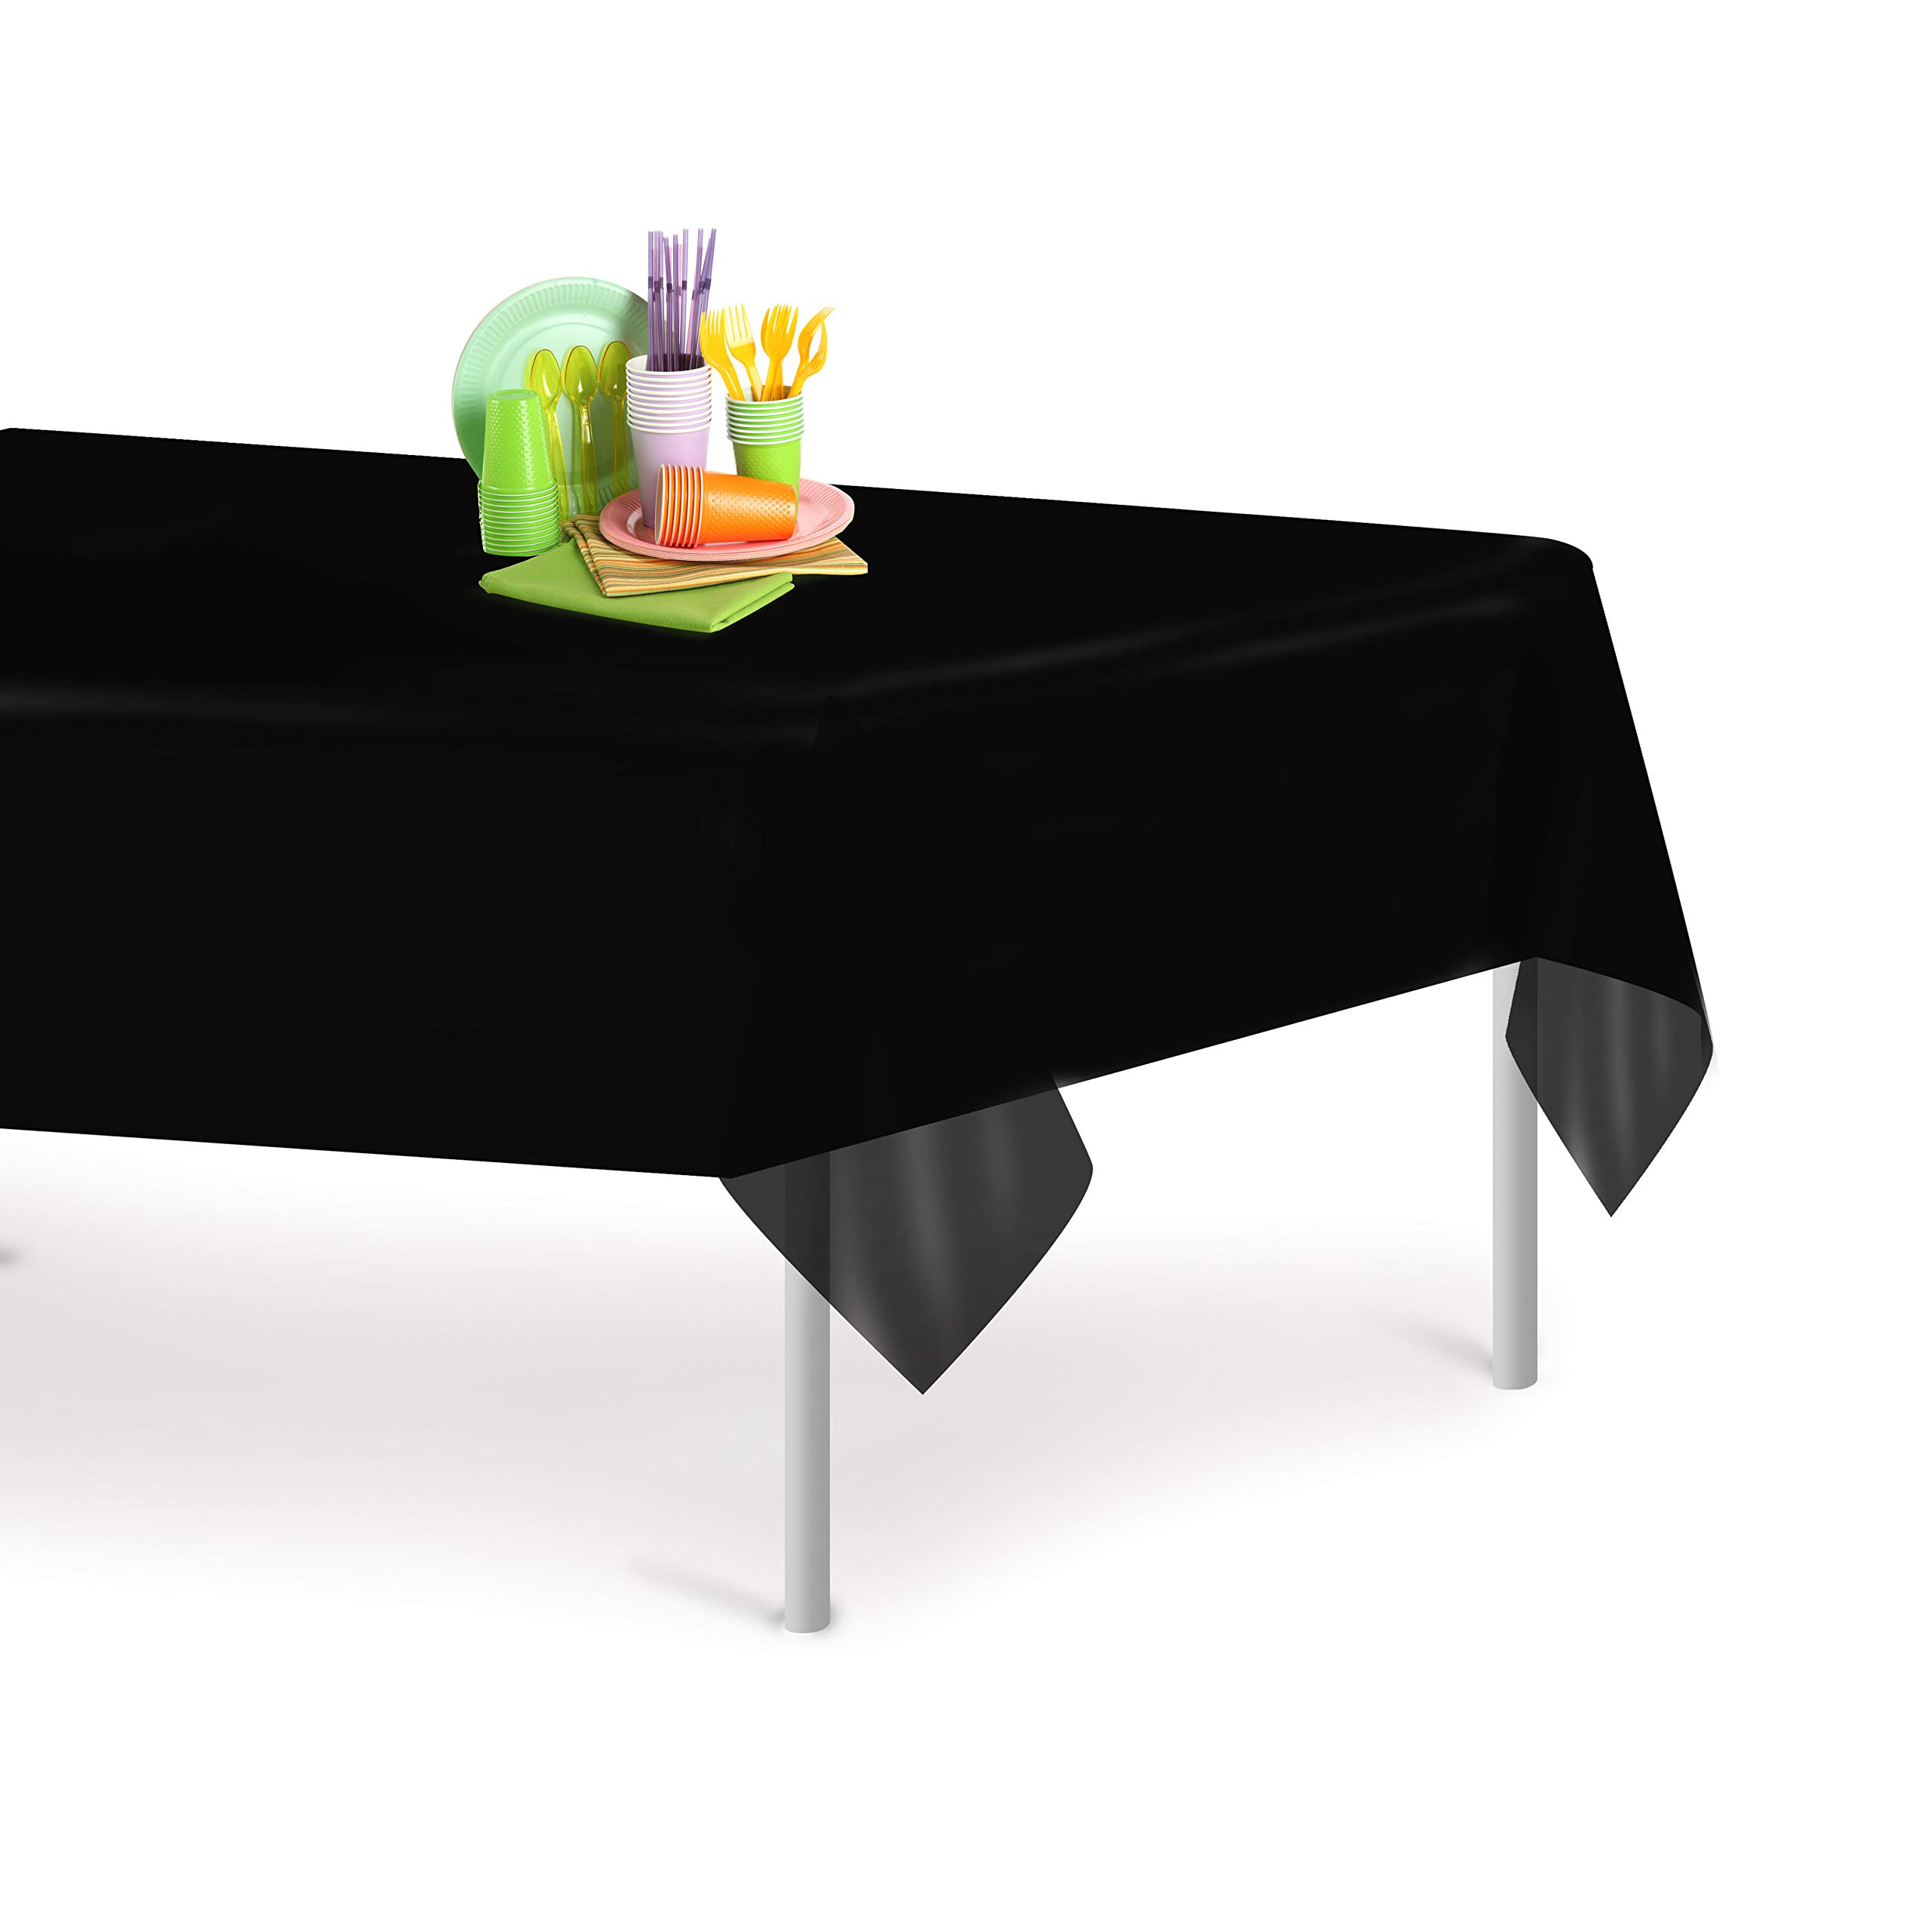 Black 12 Pack Premium Disposable Plastic Tablecloth 54 Inch. x 108 Inch. Rectangle Table Cover By Grandipity by Grandipity